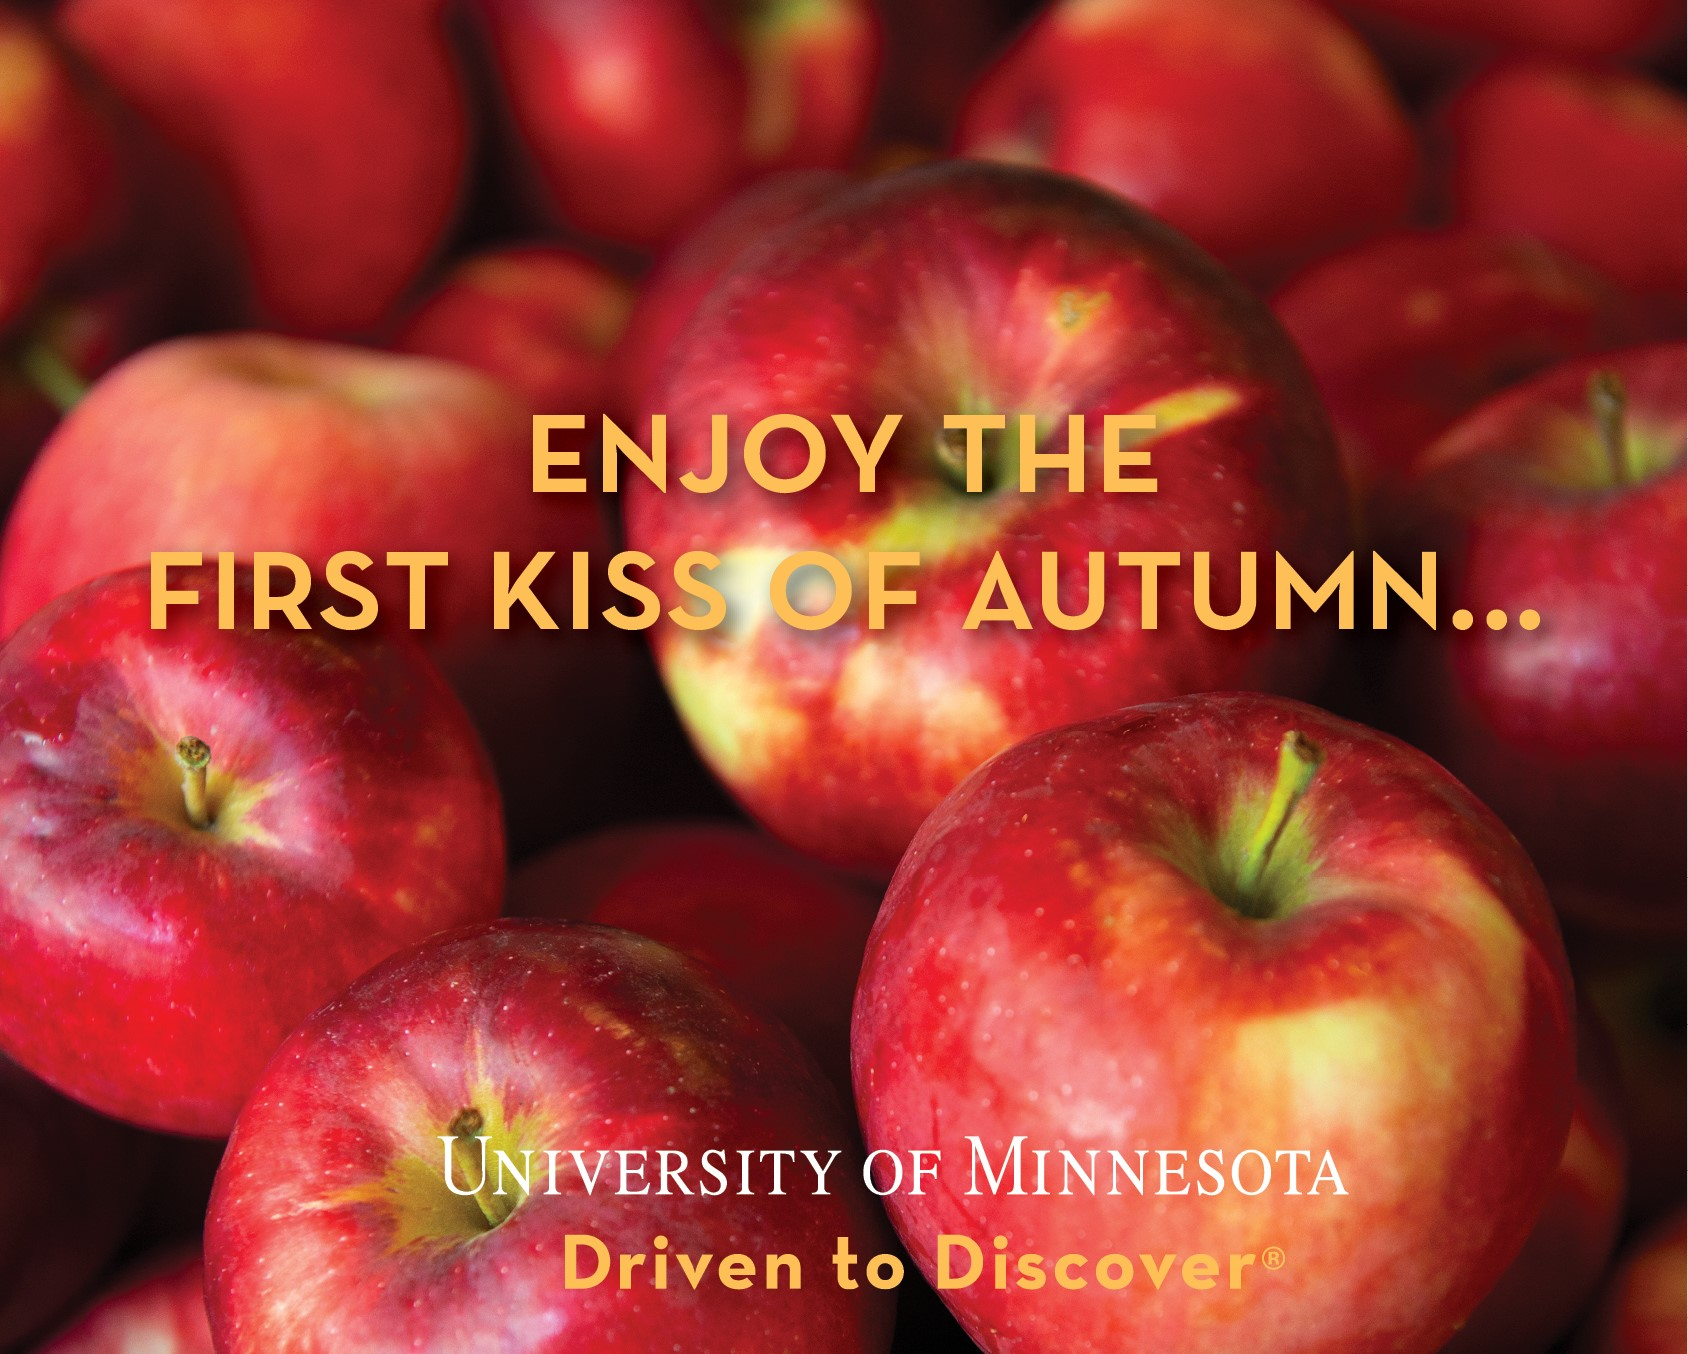 Red apples in the background with the tagline Enjoy the first kiss of autumn. University of Minnesota.